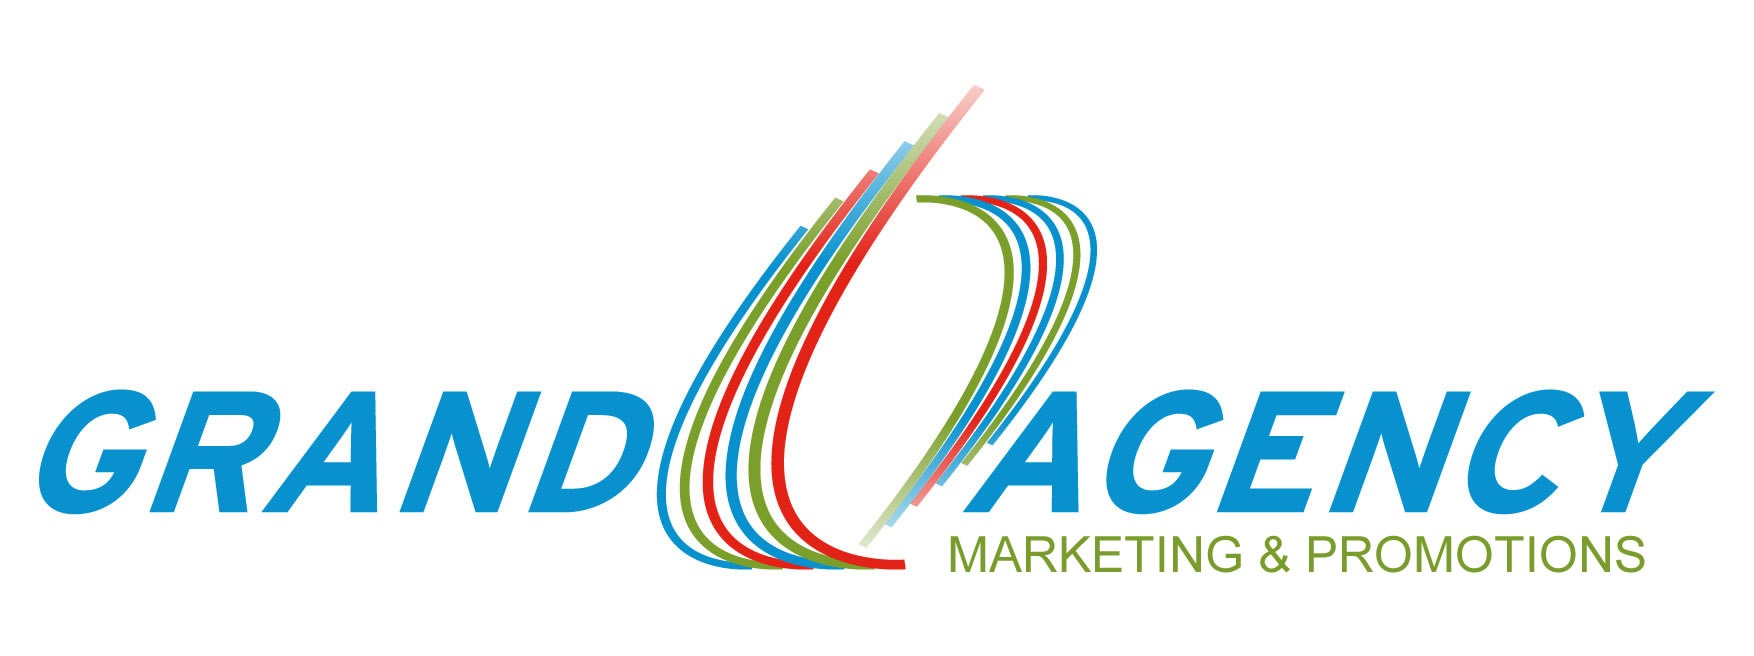 GA Marketing & Promotions